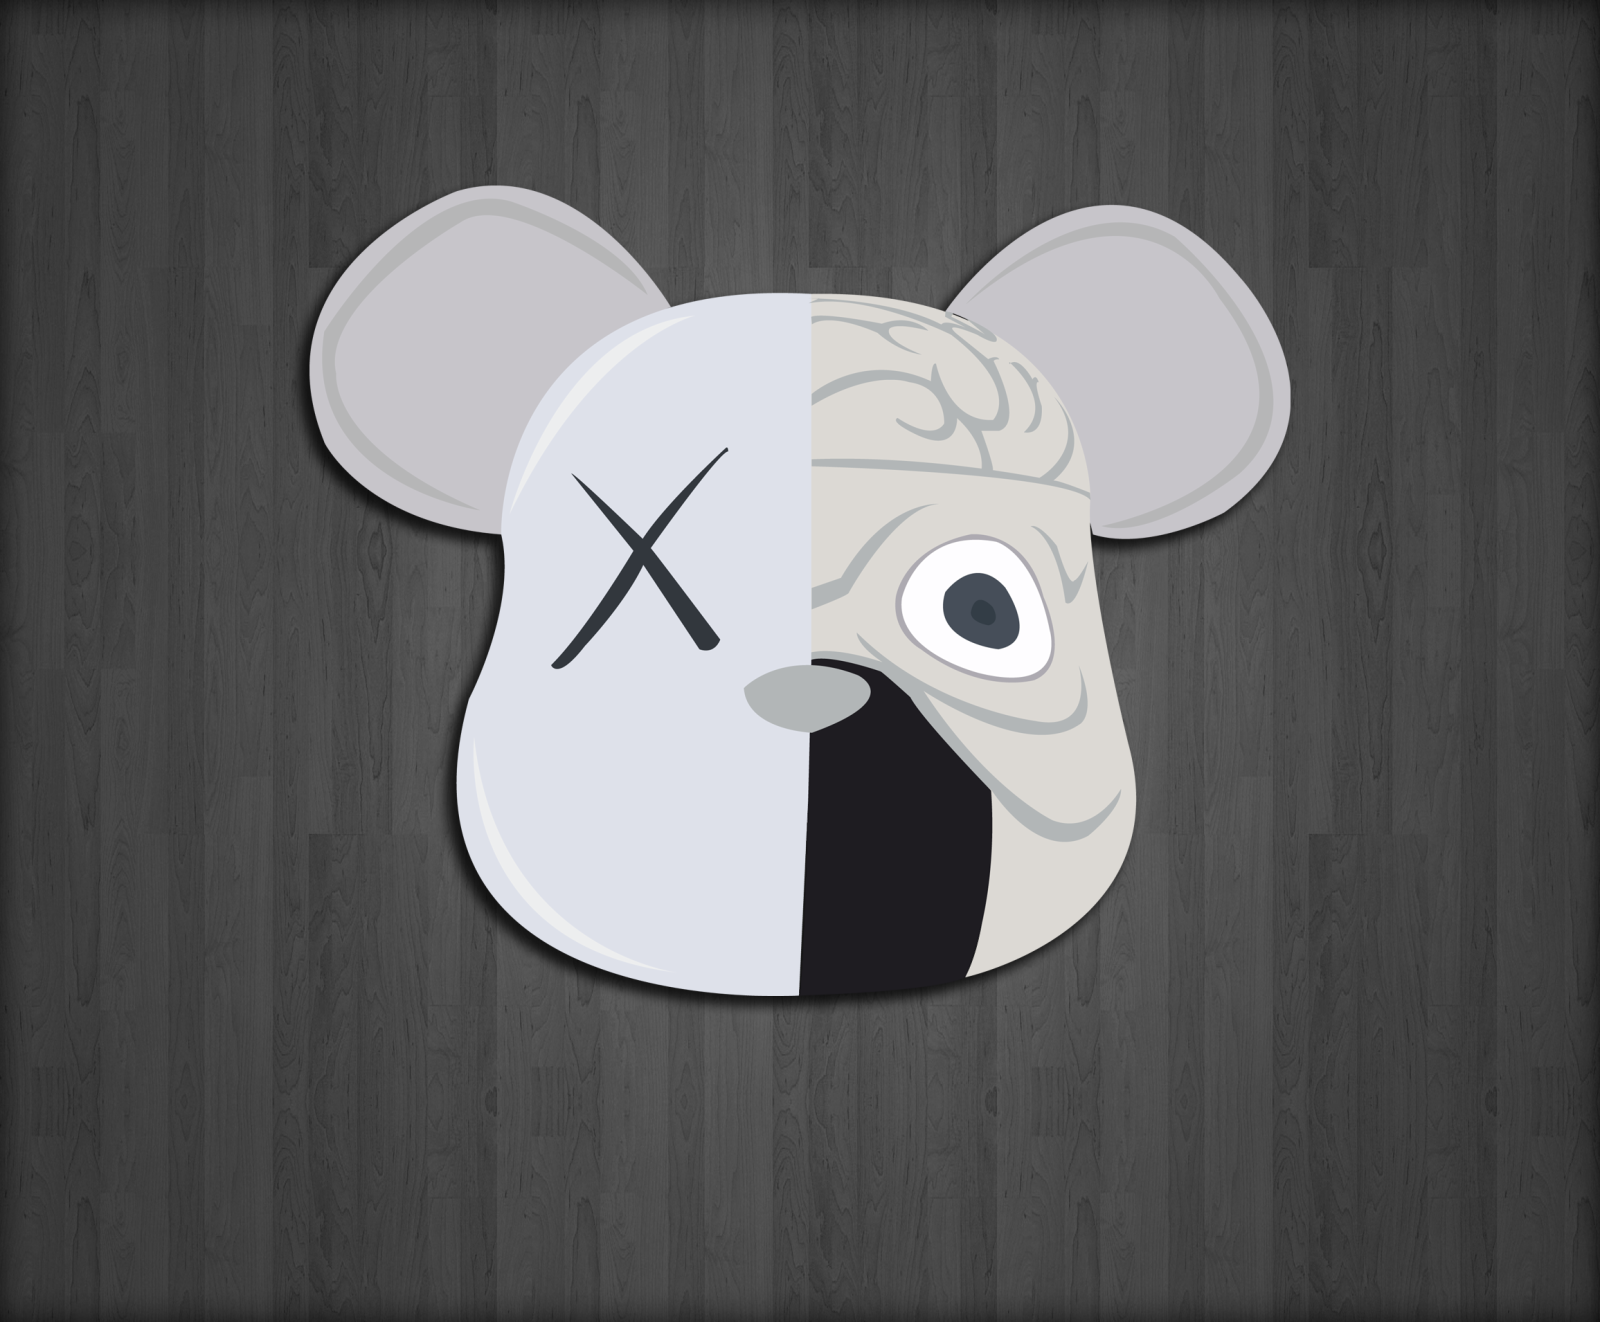 Kaws Wallpaper that I made for my laptop 1600x1322